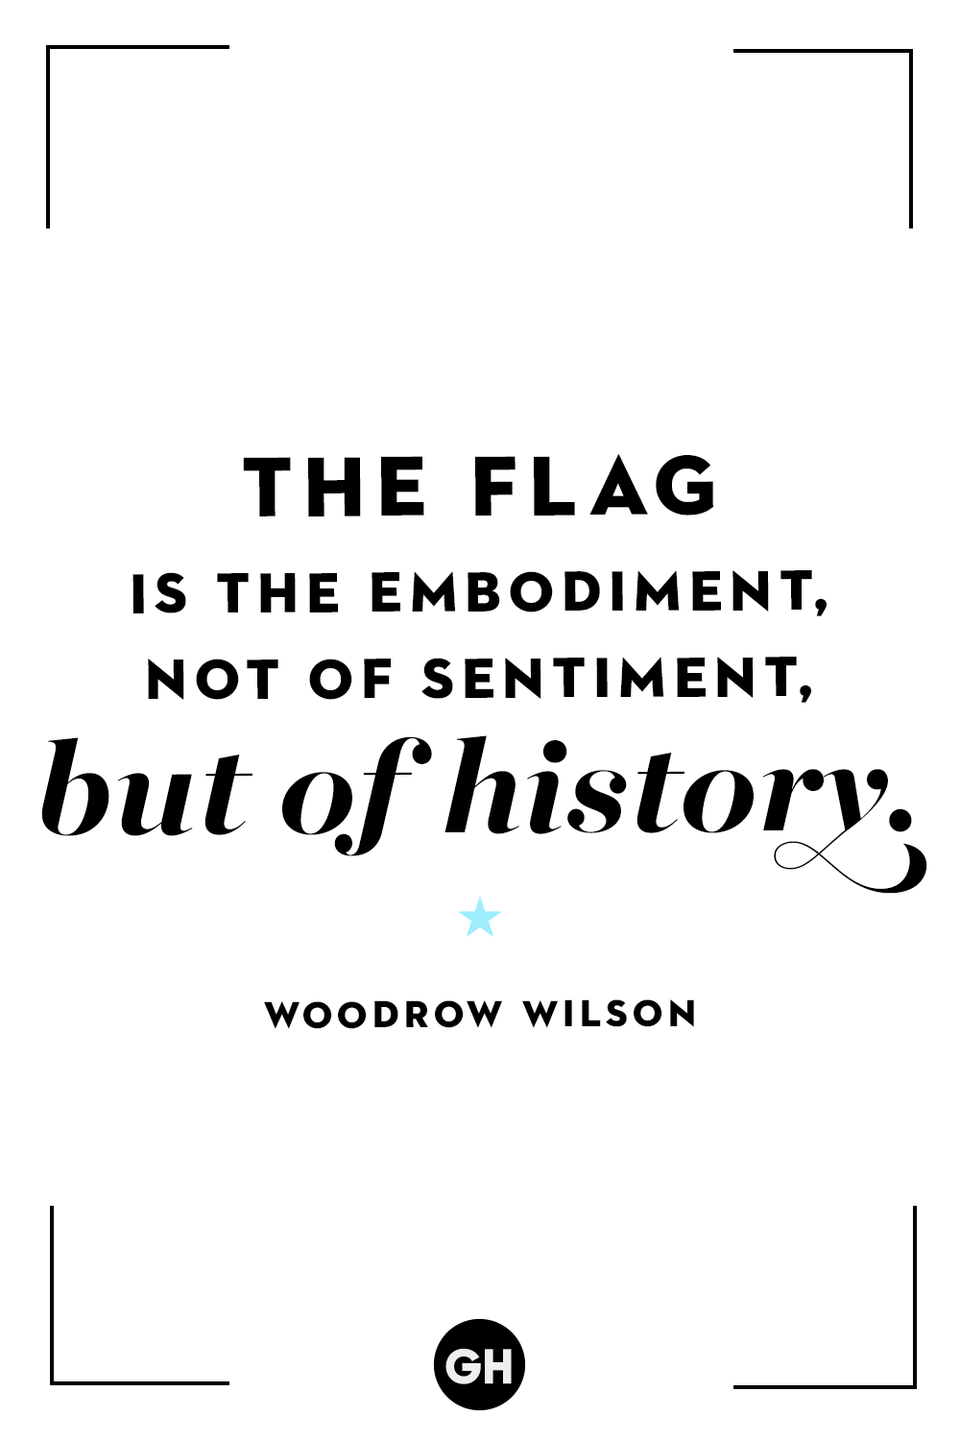 <p>The flag is the embodiment, not of sentiment, but of history.</p>